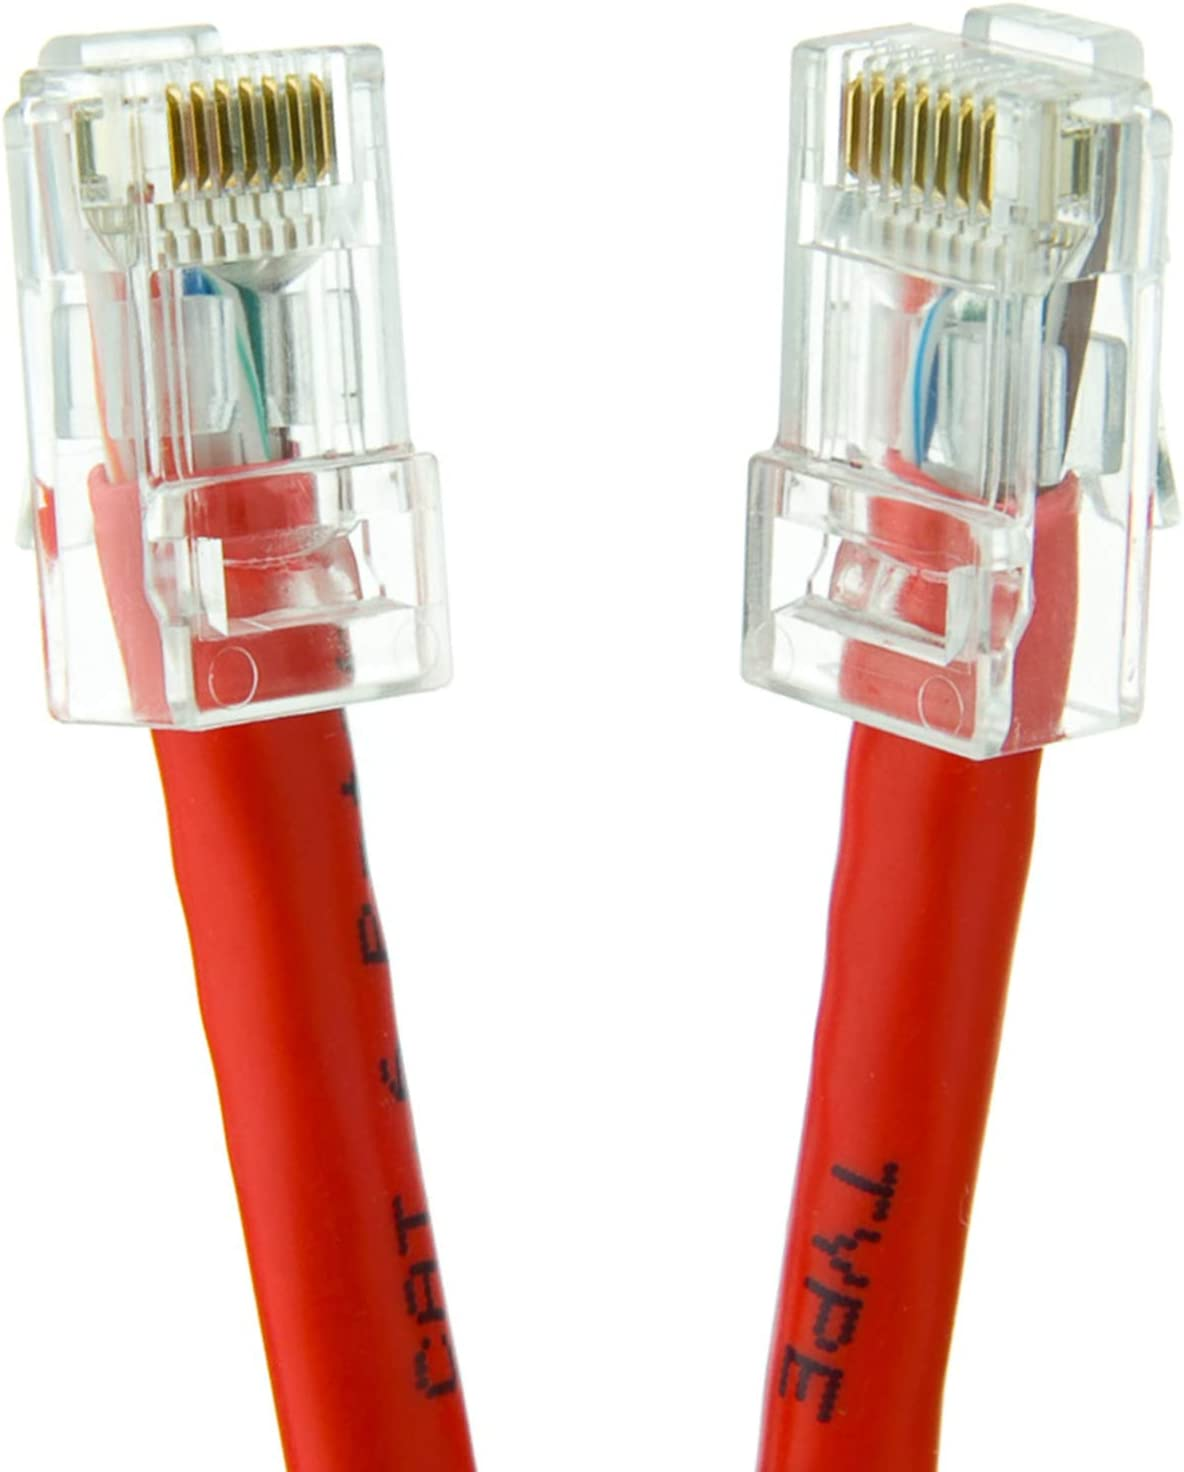 1Gigabit//Sec High Speed LAN Internet//Patch Cable 4-Pack - 20 Feet 350MHz Red GOWOS Cat5e Shielded Ethernet Cable 26AWG Network Cable with Gold Plated RJ45 Snagless//Molded//Booted Connector